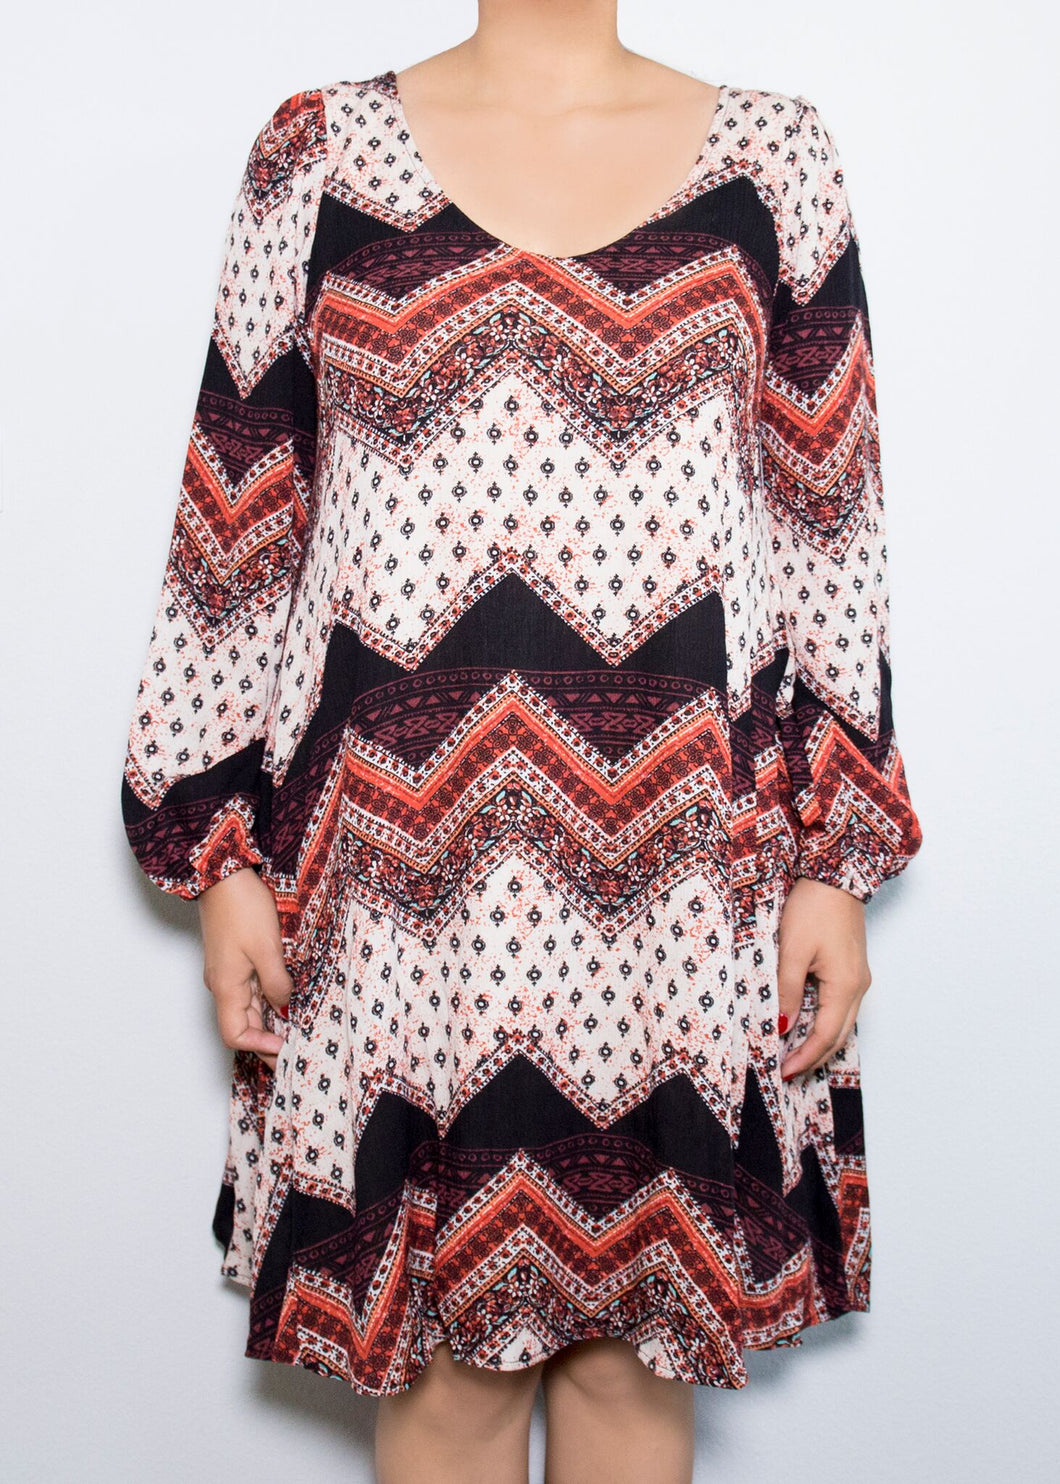 Aster Dress - Chevron Print - (3X)